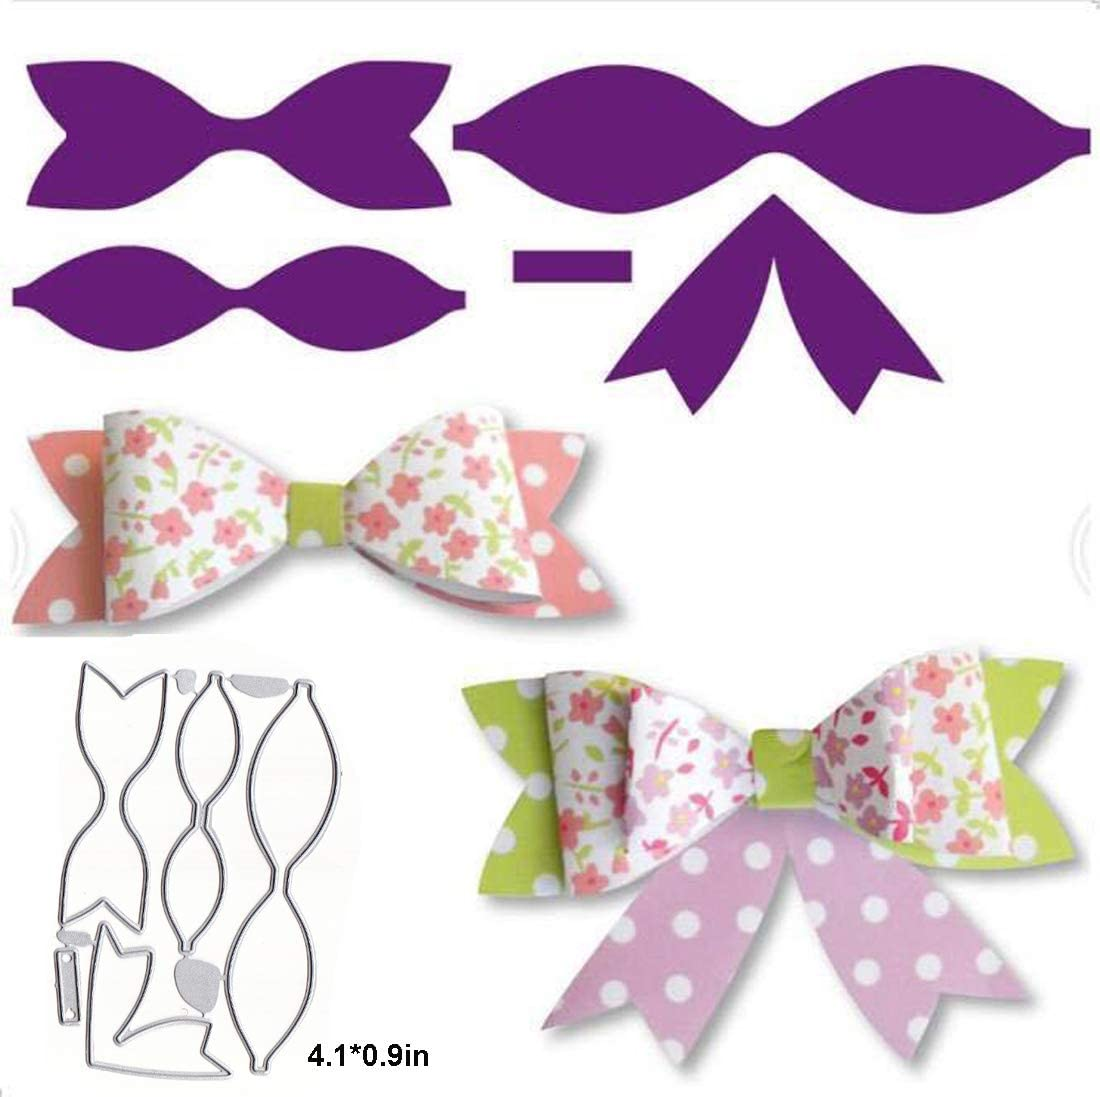 Bow Metal Cutting Dies 4.4 by 2.9 Inch Christmas Die Cuts for Card Making and Scrapbooking (Bow Dies)